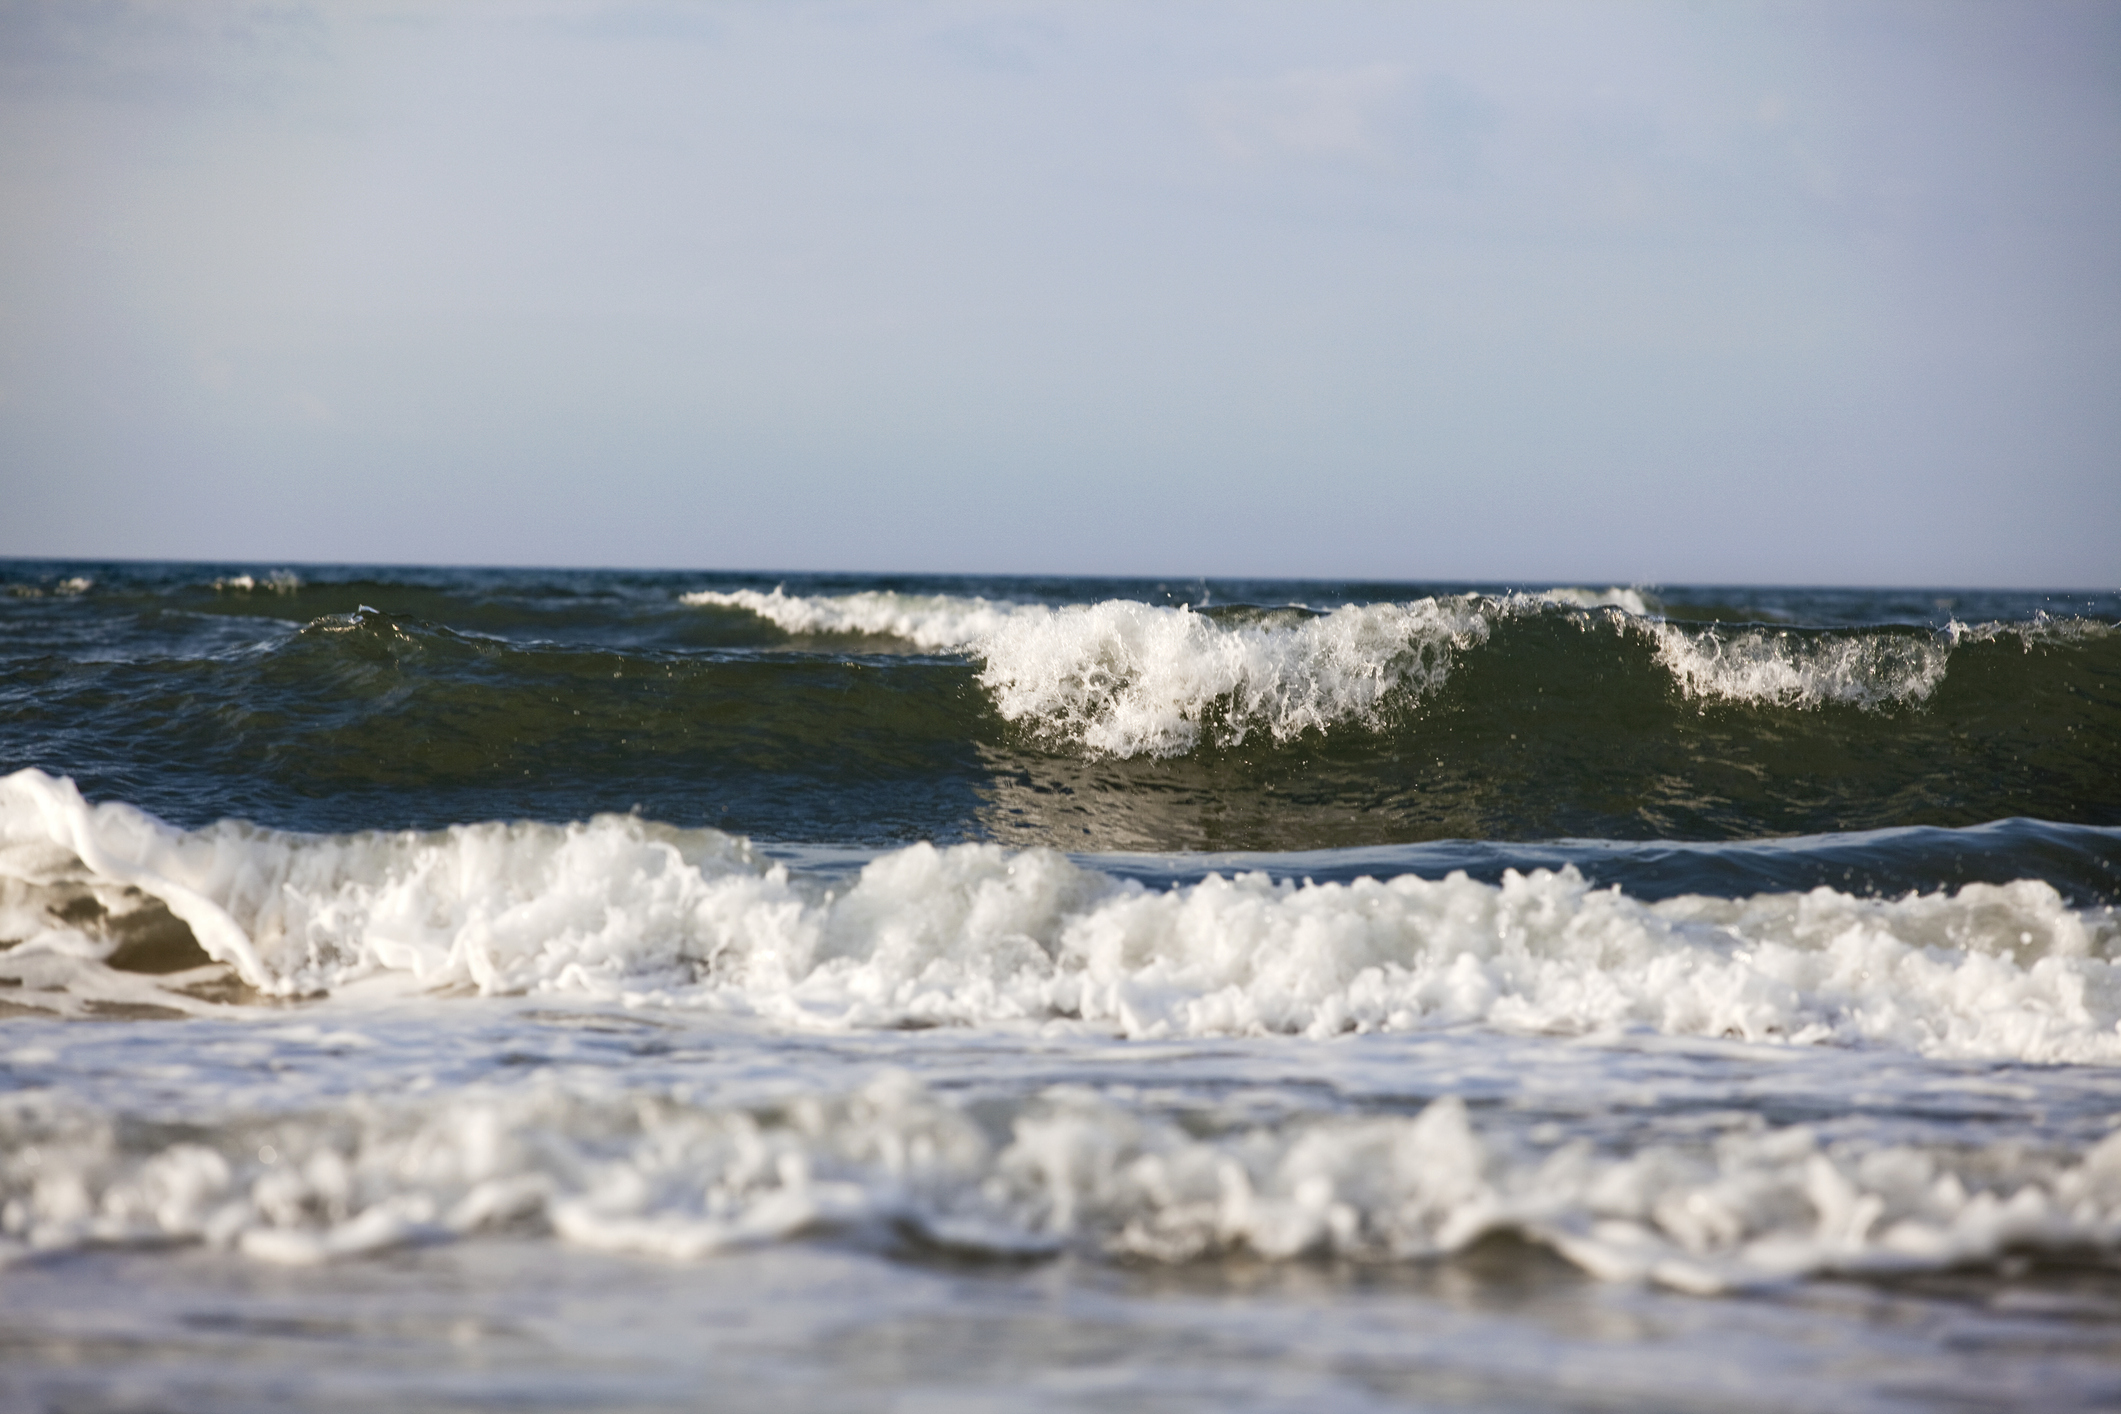 Waves at the Outer Banks. (Getty Images)